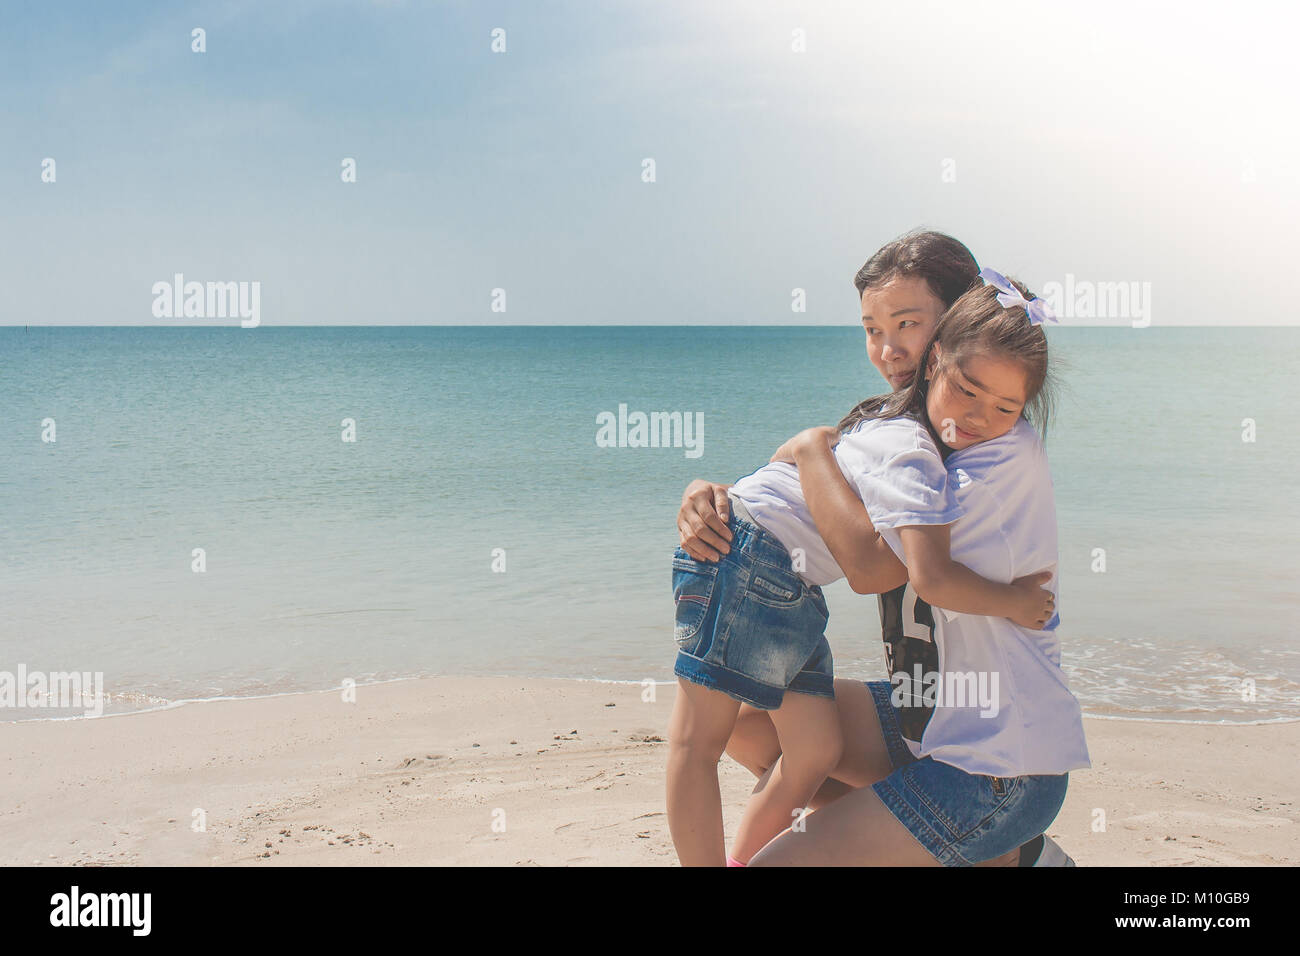 Adorable and Family Concept : Woman and child hugging and feeling happiness on sand beach with seascape view in - Stock Image